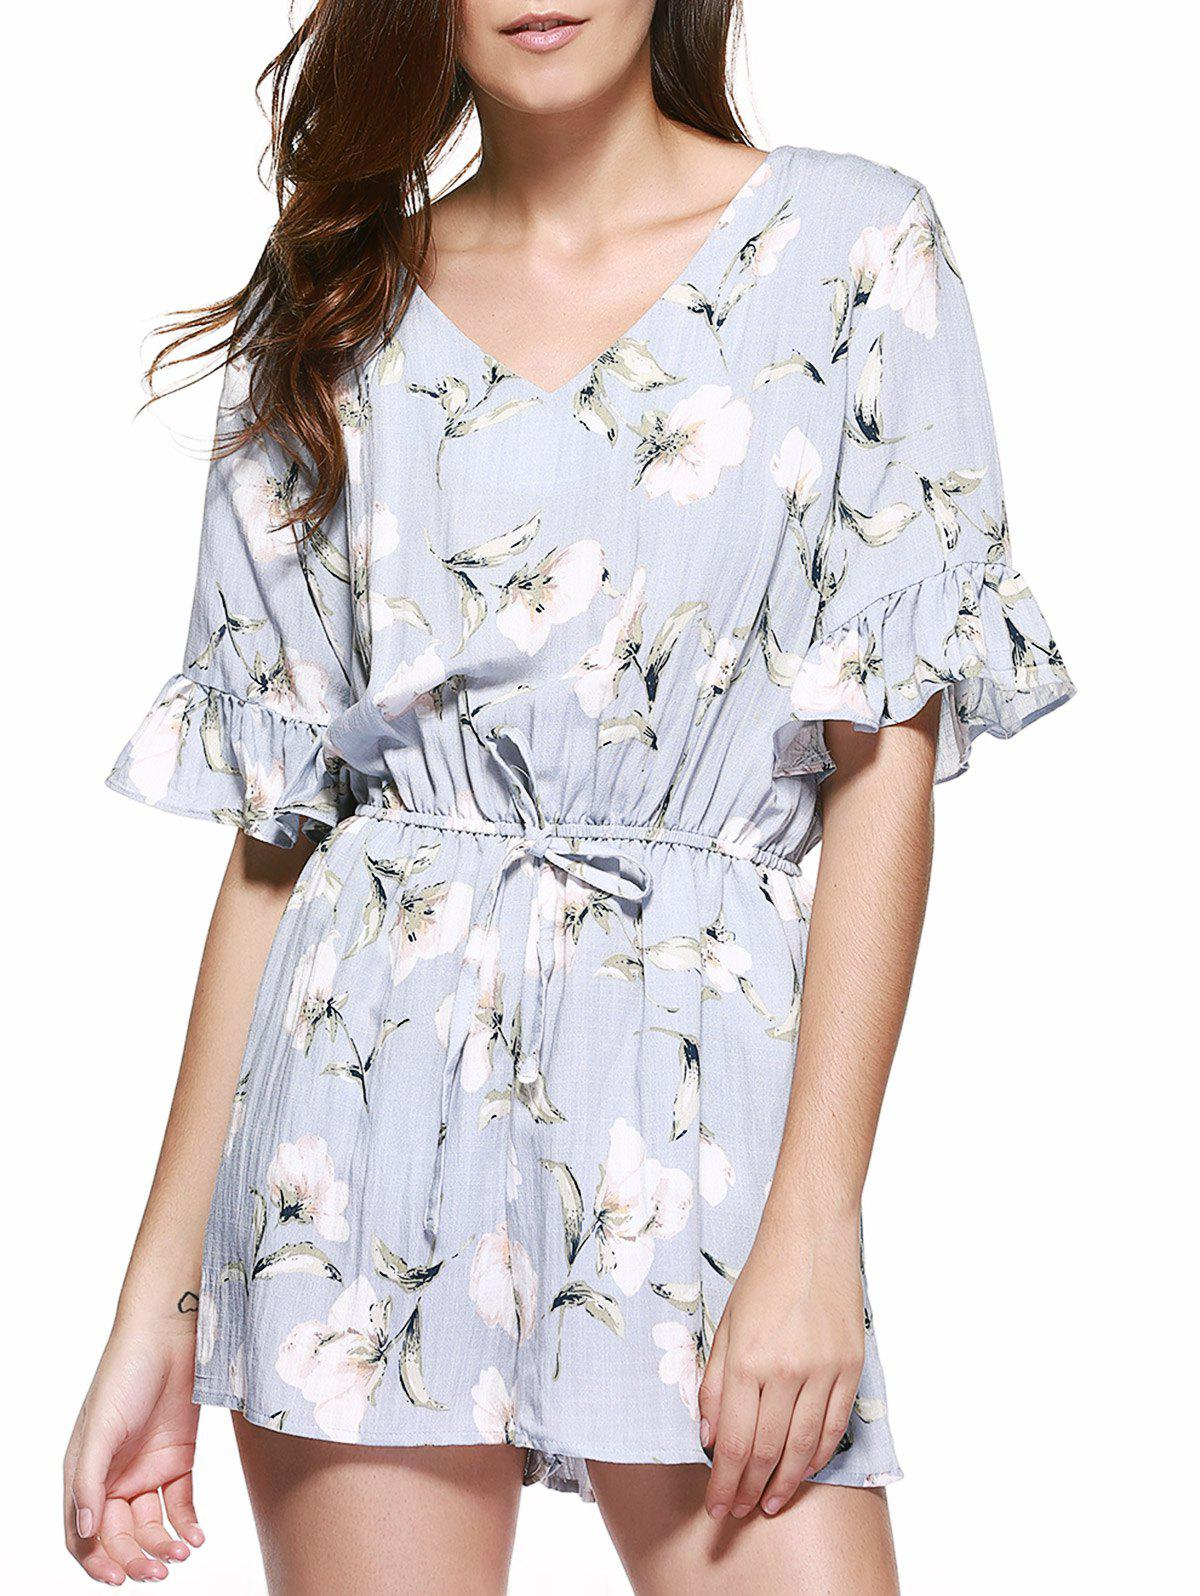 Refreshing V-Neck Ruffles Sleeve Flower Print Romper For Women